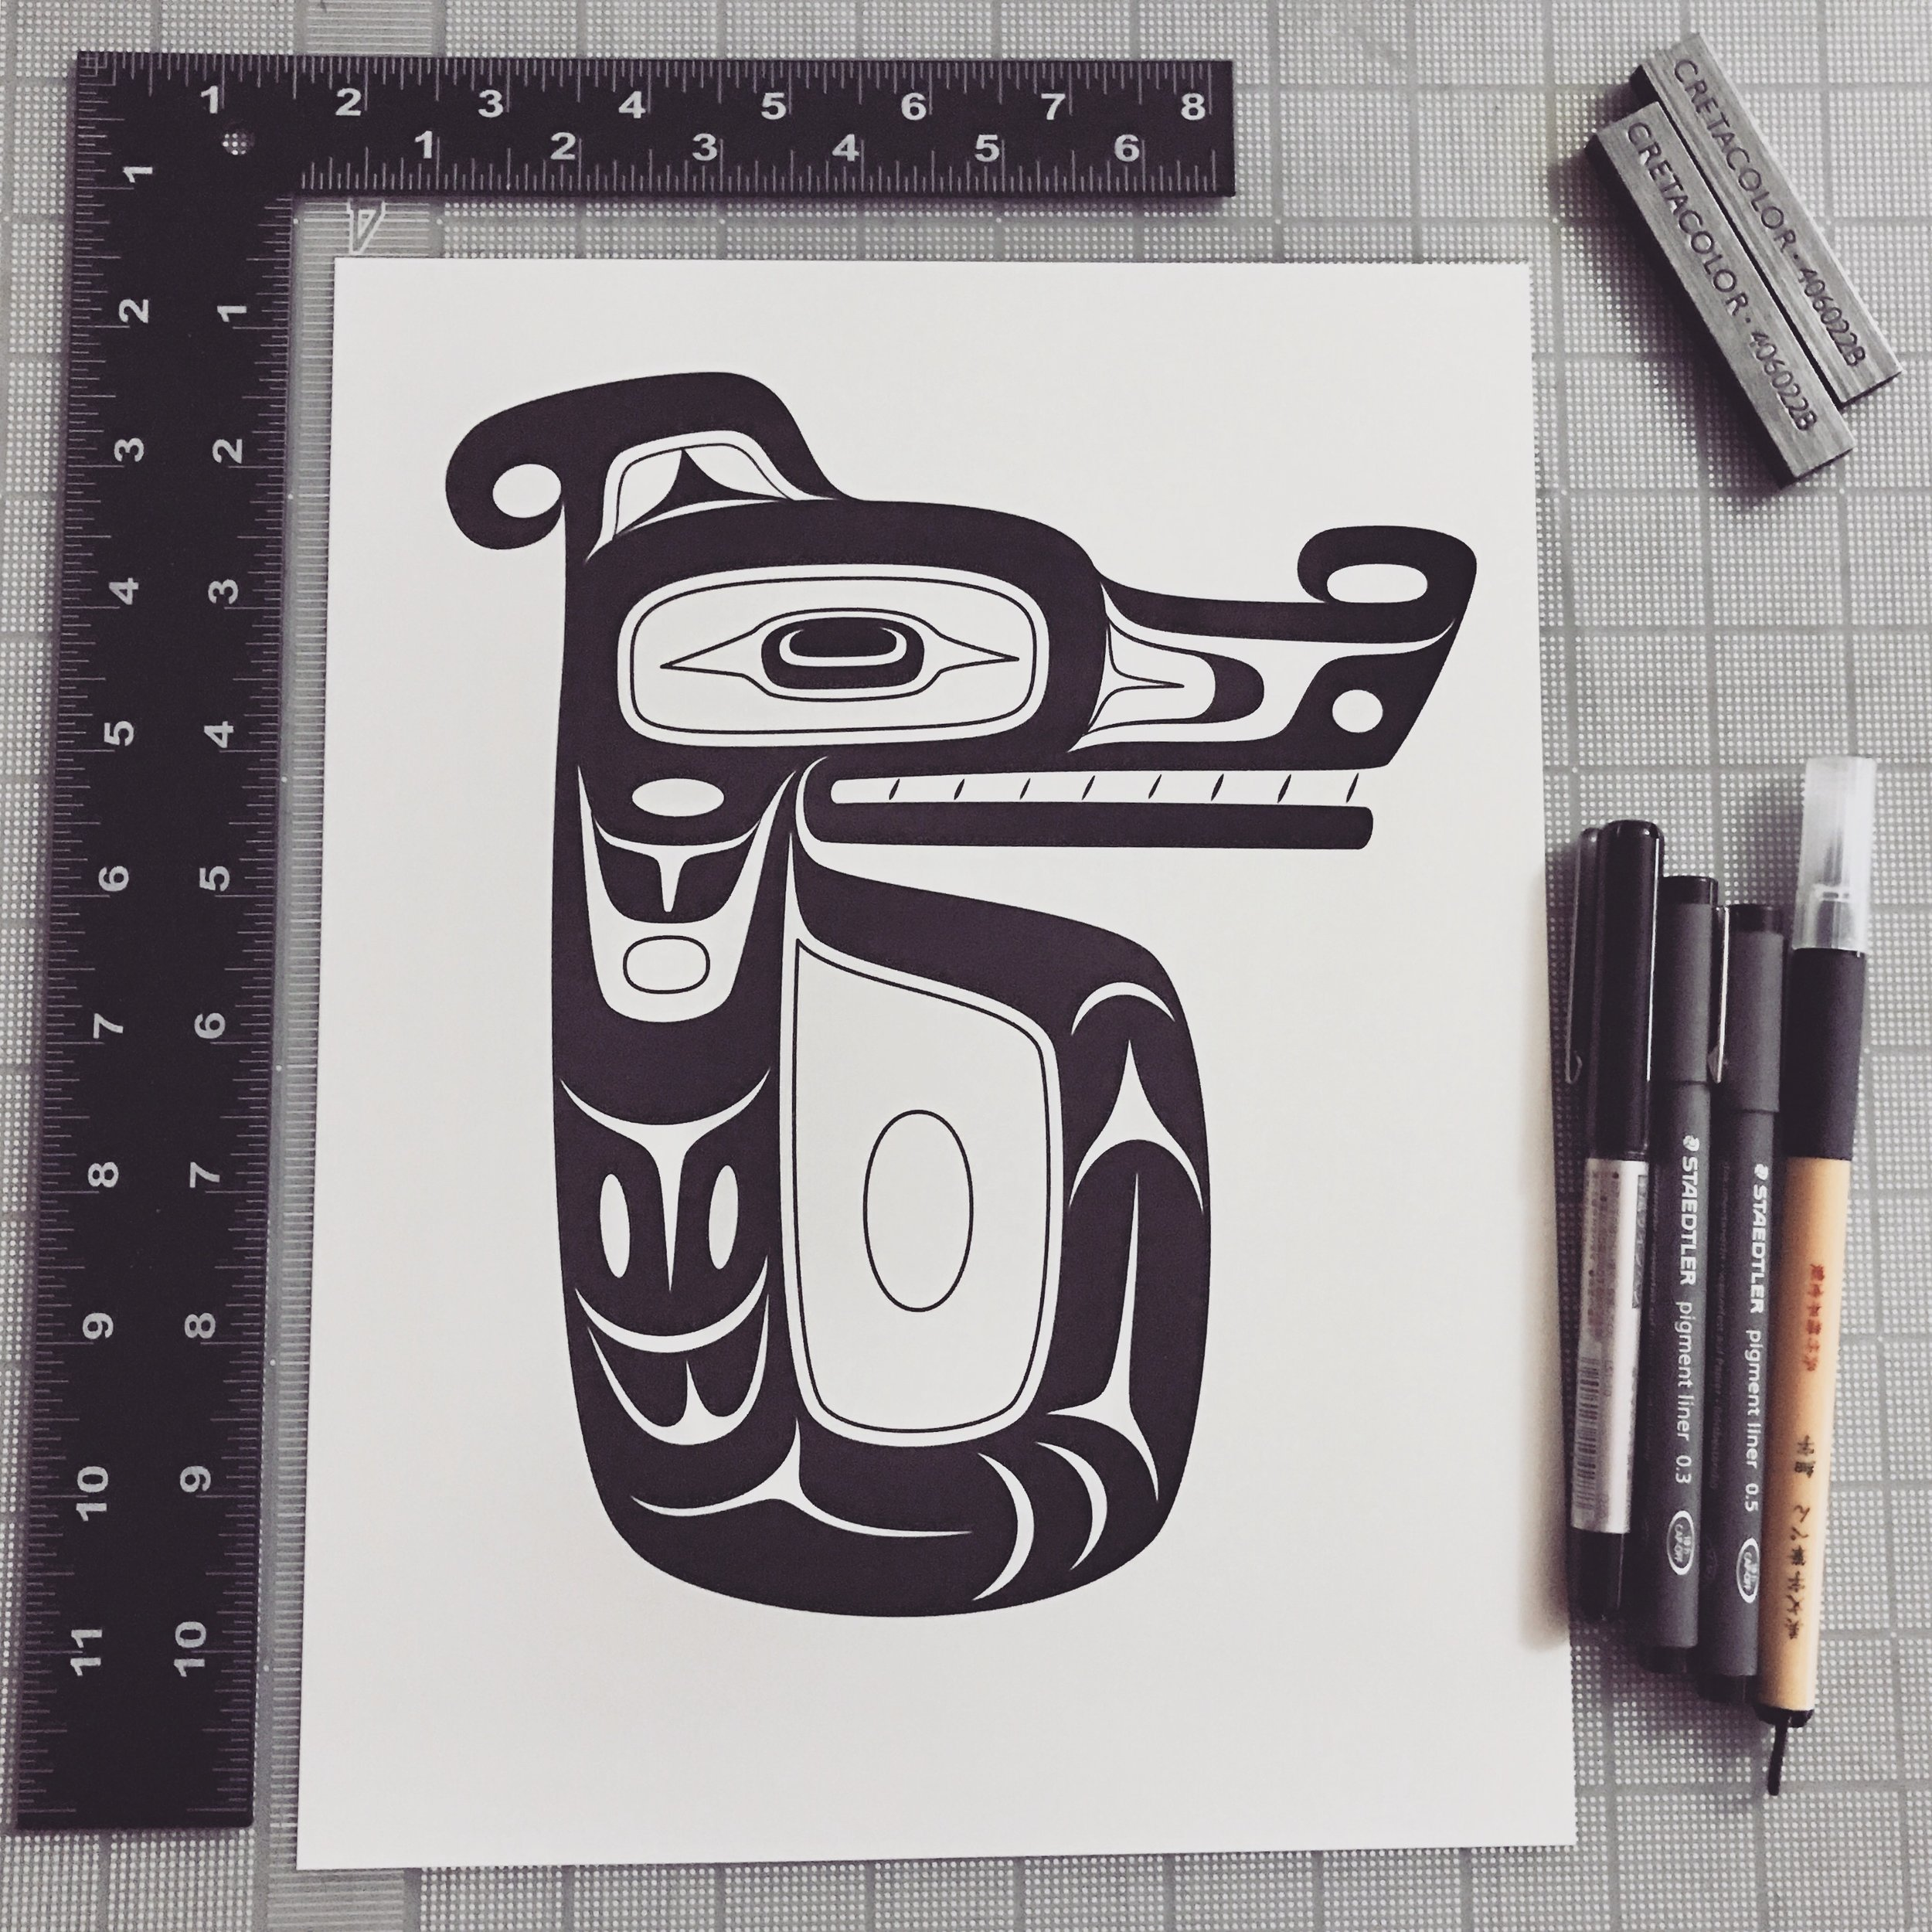 Anything you want day 31 Nuu-chah-nulth serpent